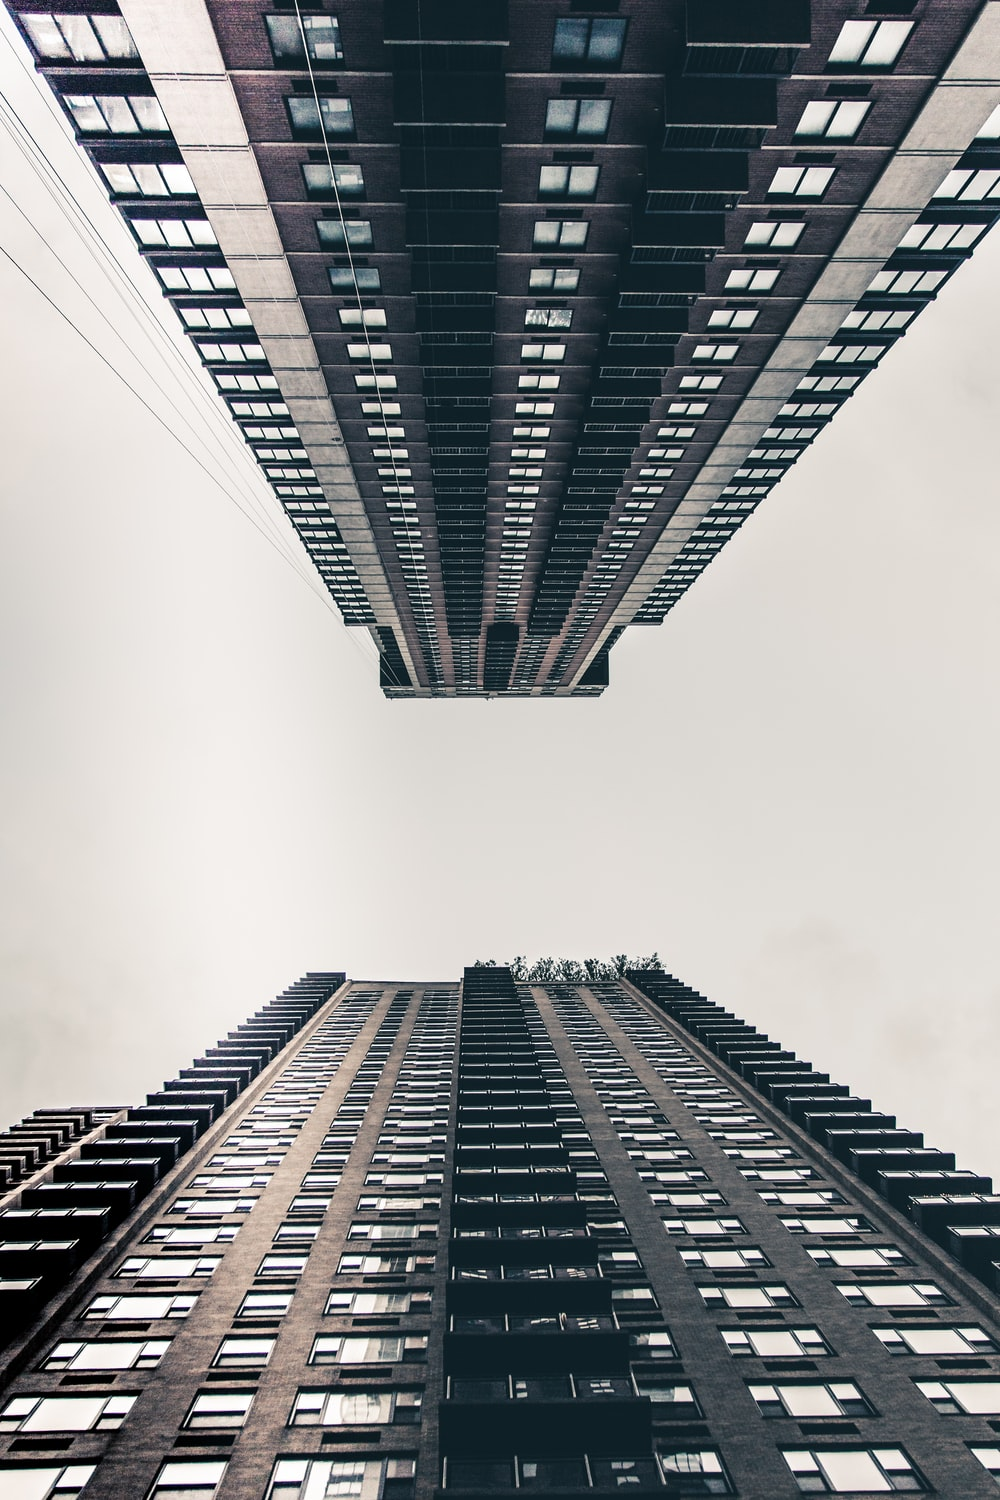 worm's eye view photography of two high-rise buildings